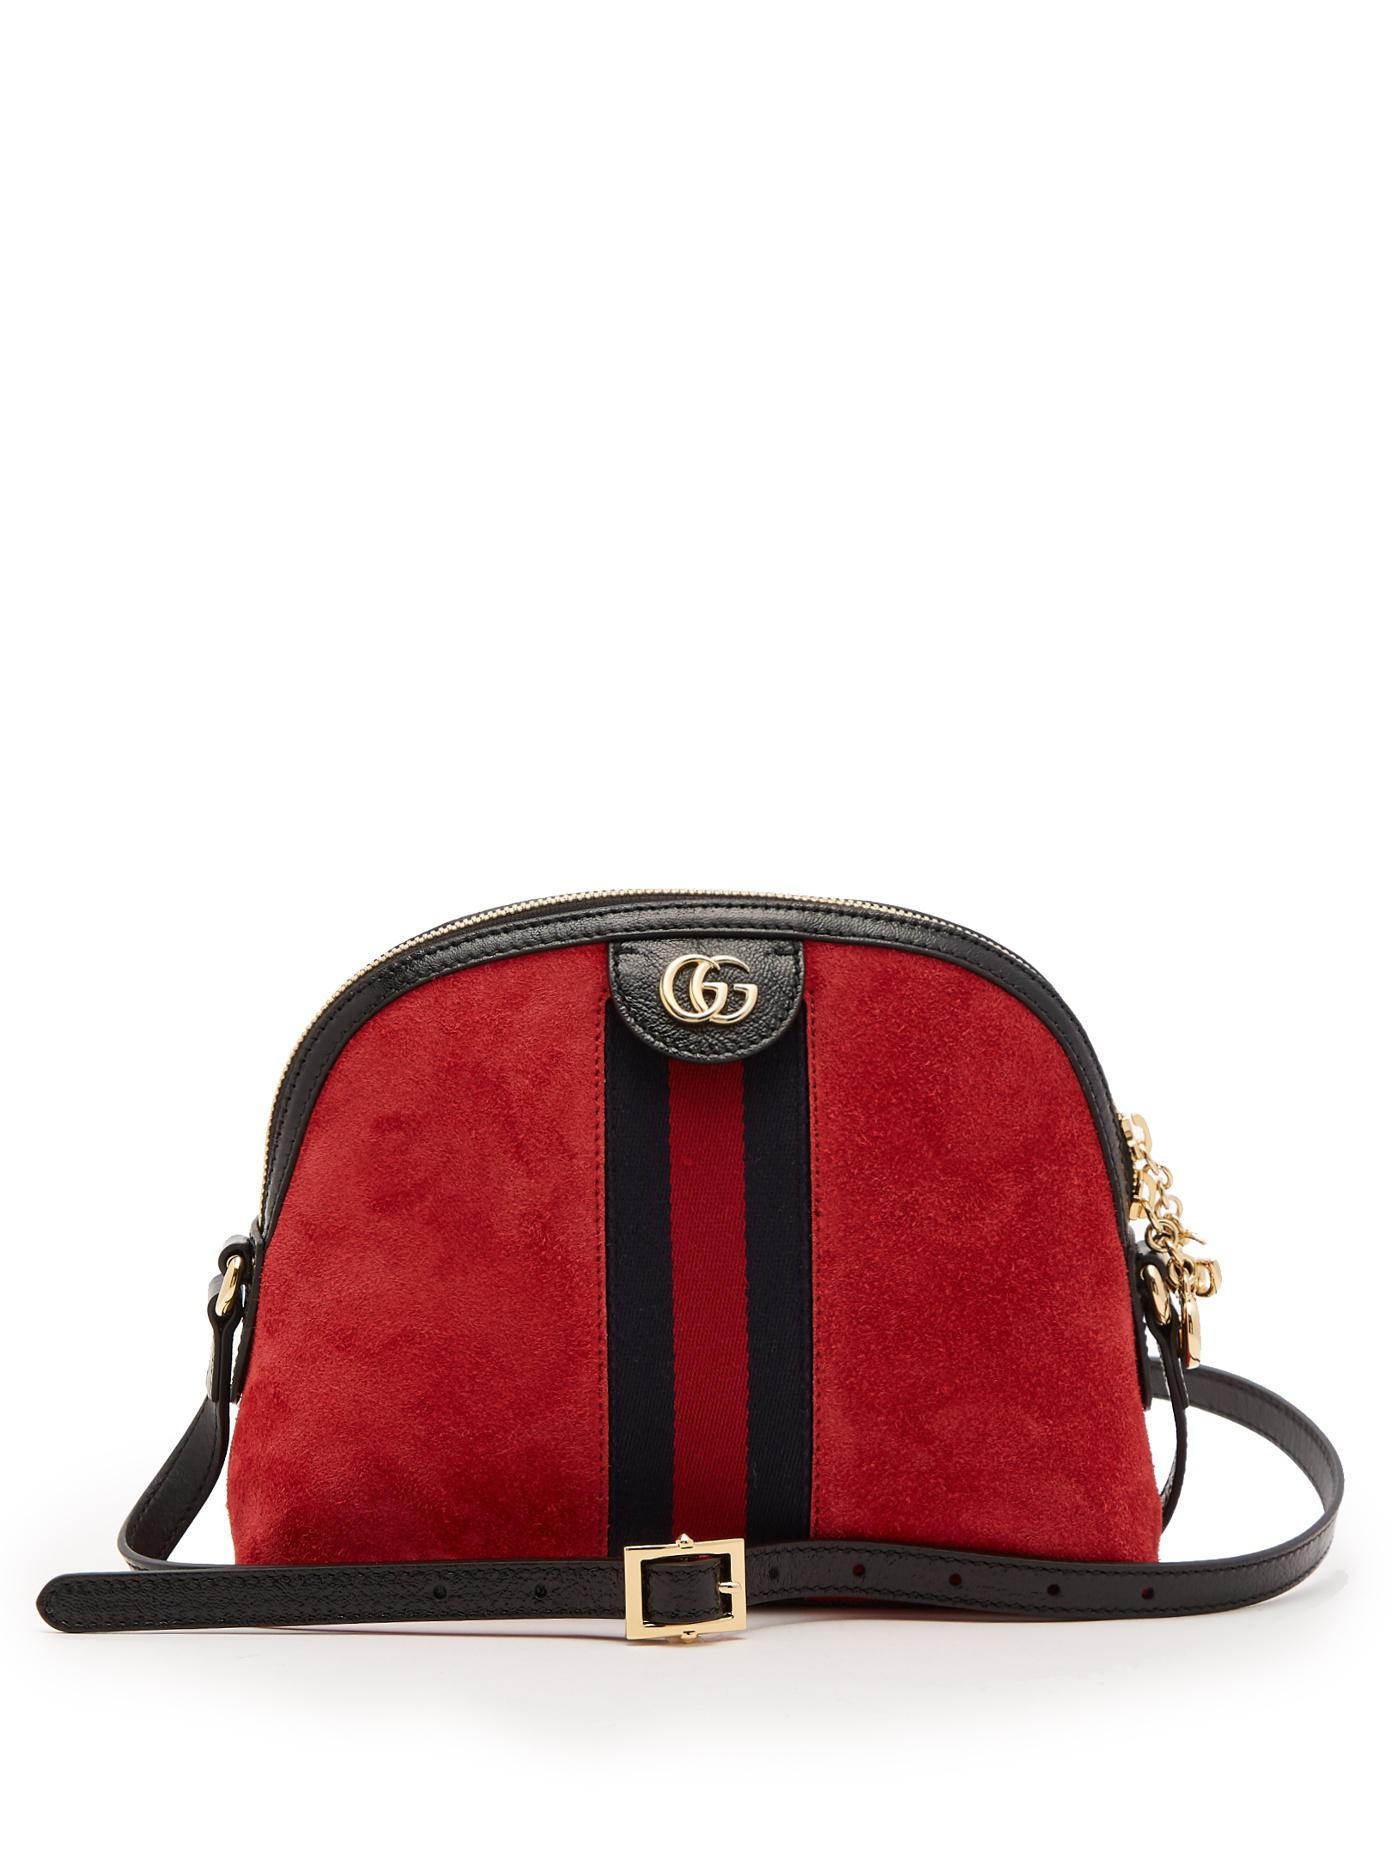 Lyst - Gucci Ophidia Suede Cross-body Bag in Red